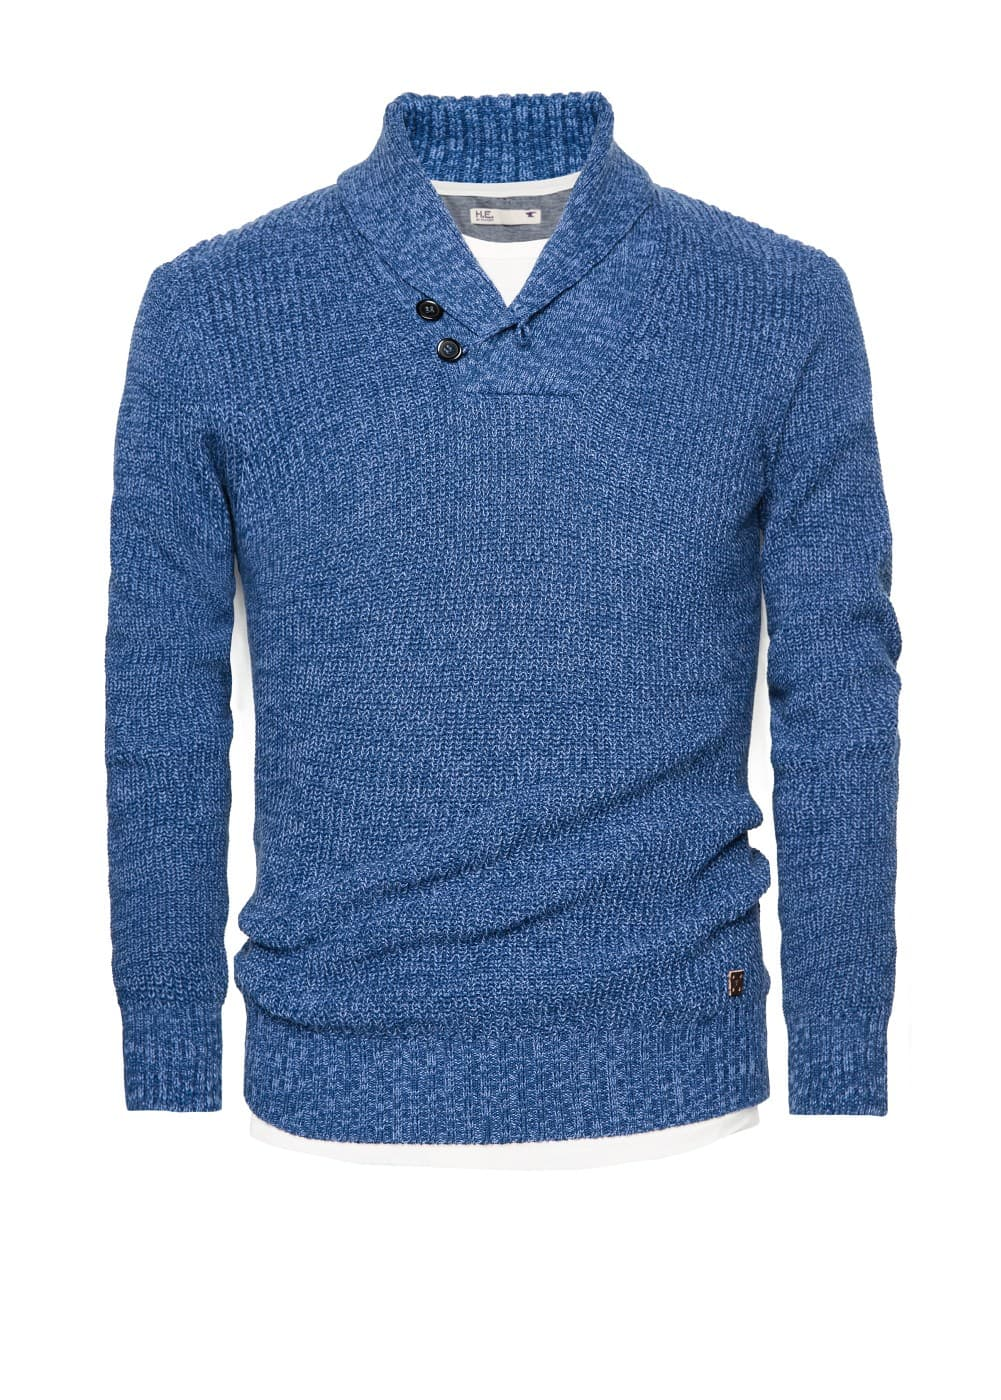 Shawl collar flecked sweater